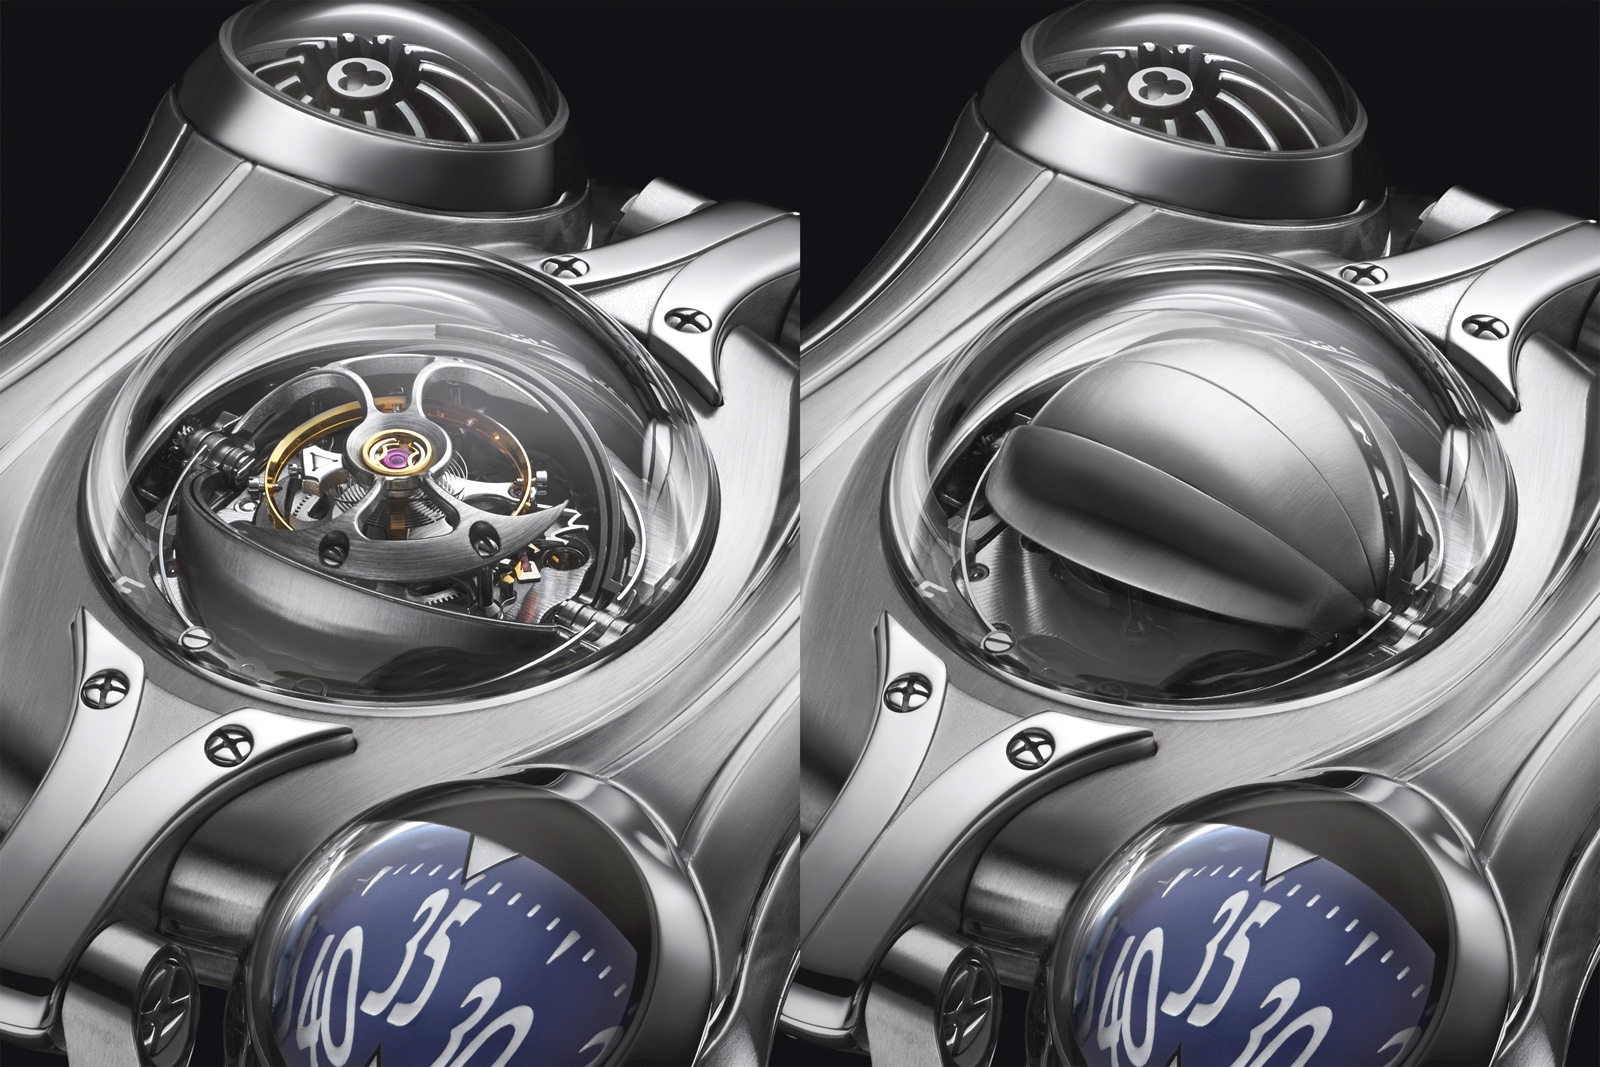 MB&F HM6 Final Edition Detail